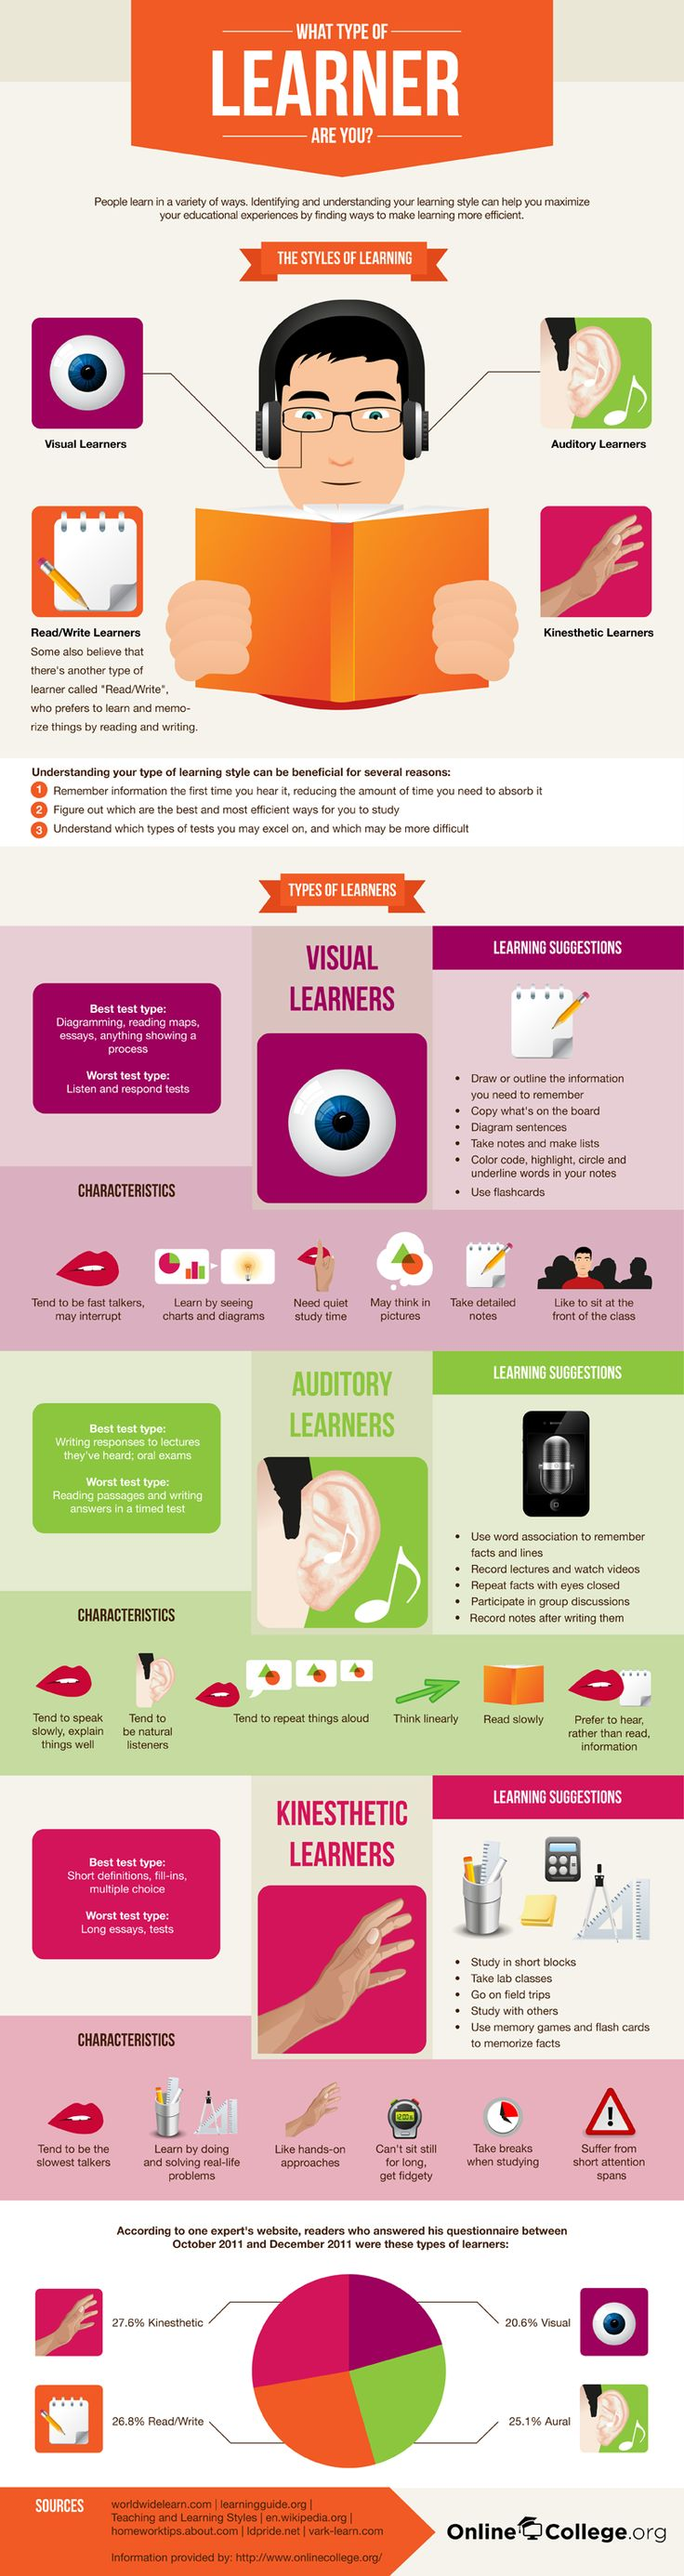 Learning styles infographic - simple explanations that will help #homeschool @TheHomeScholar